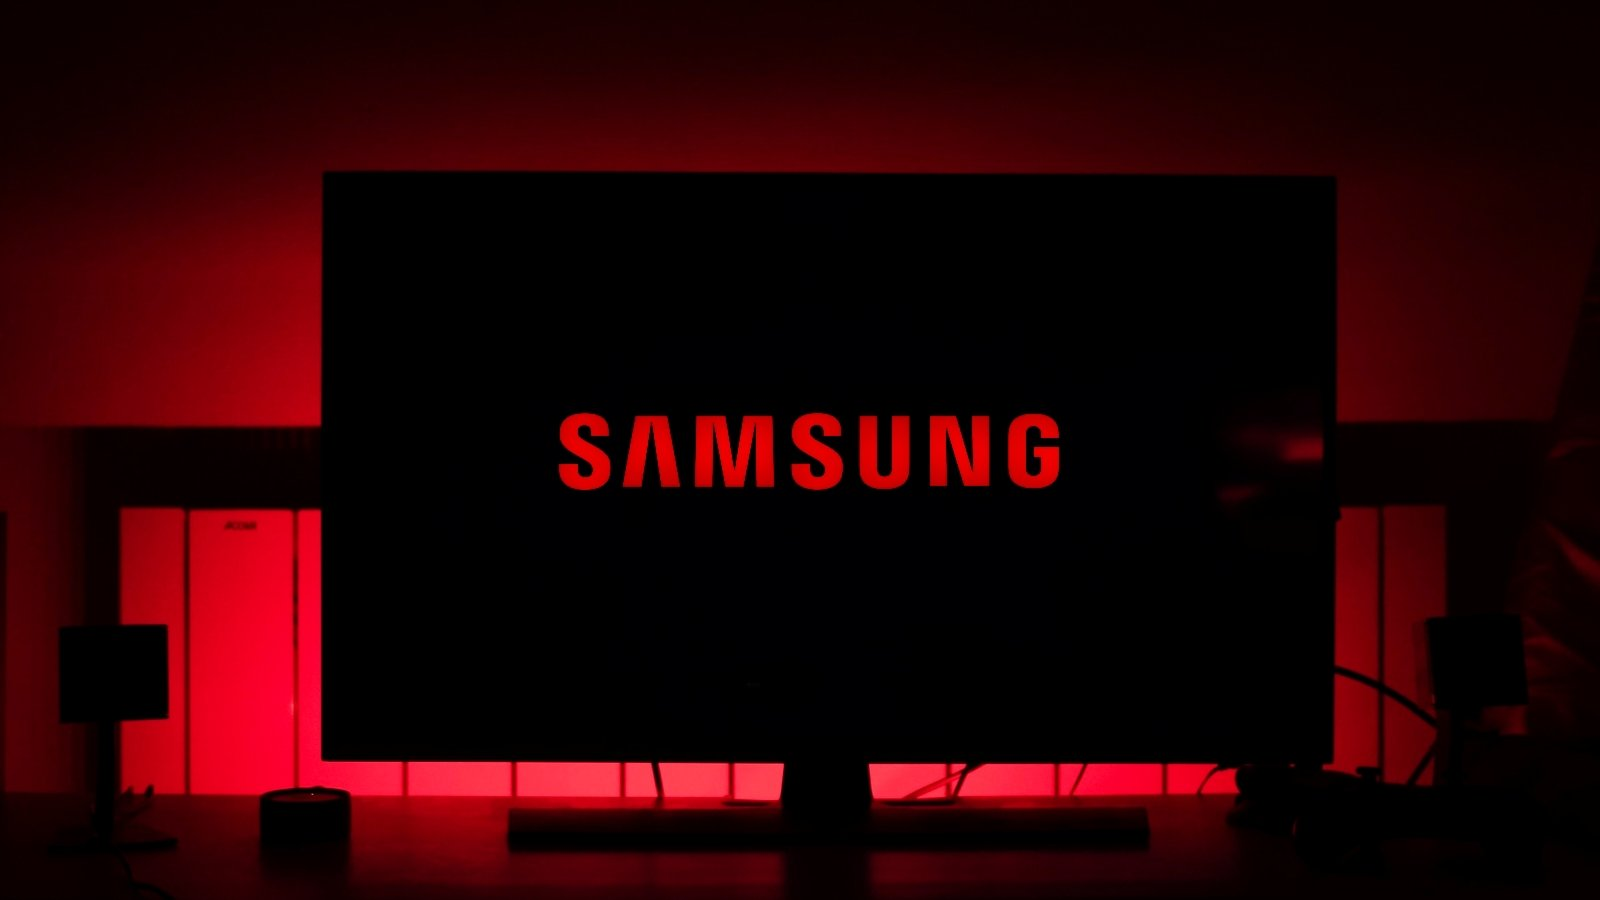 Samsung can remotely disable their TVs worldwide using TV Block